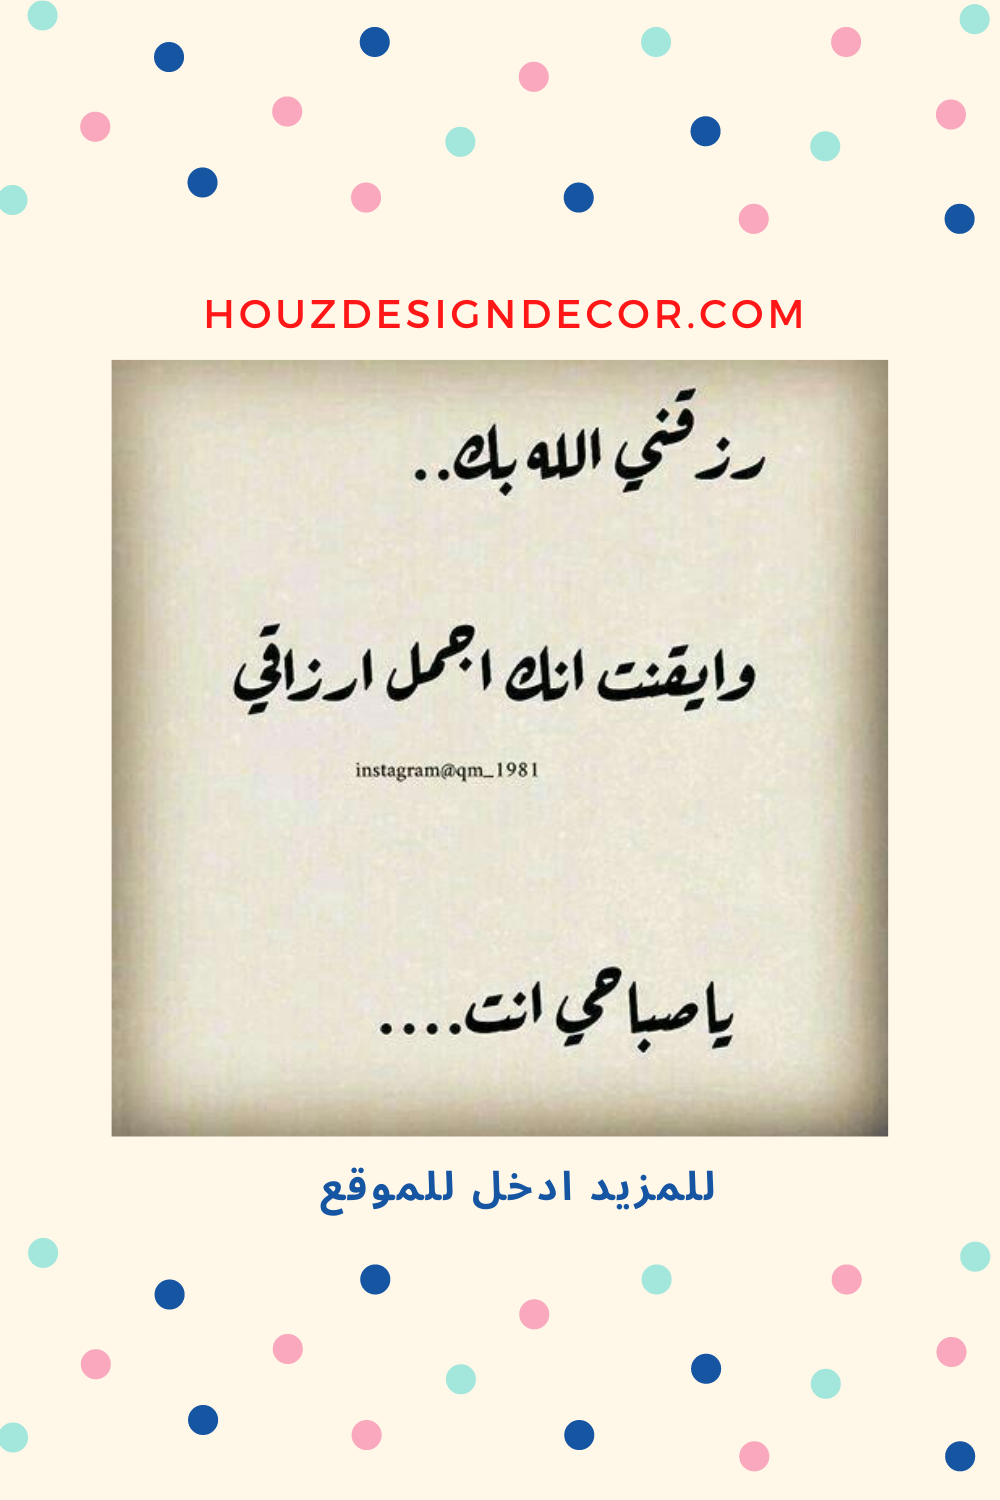 Morning Texts For Him In Arabic Morning Texts For Him Morning Texts Text For Him